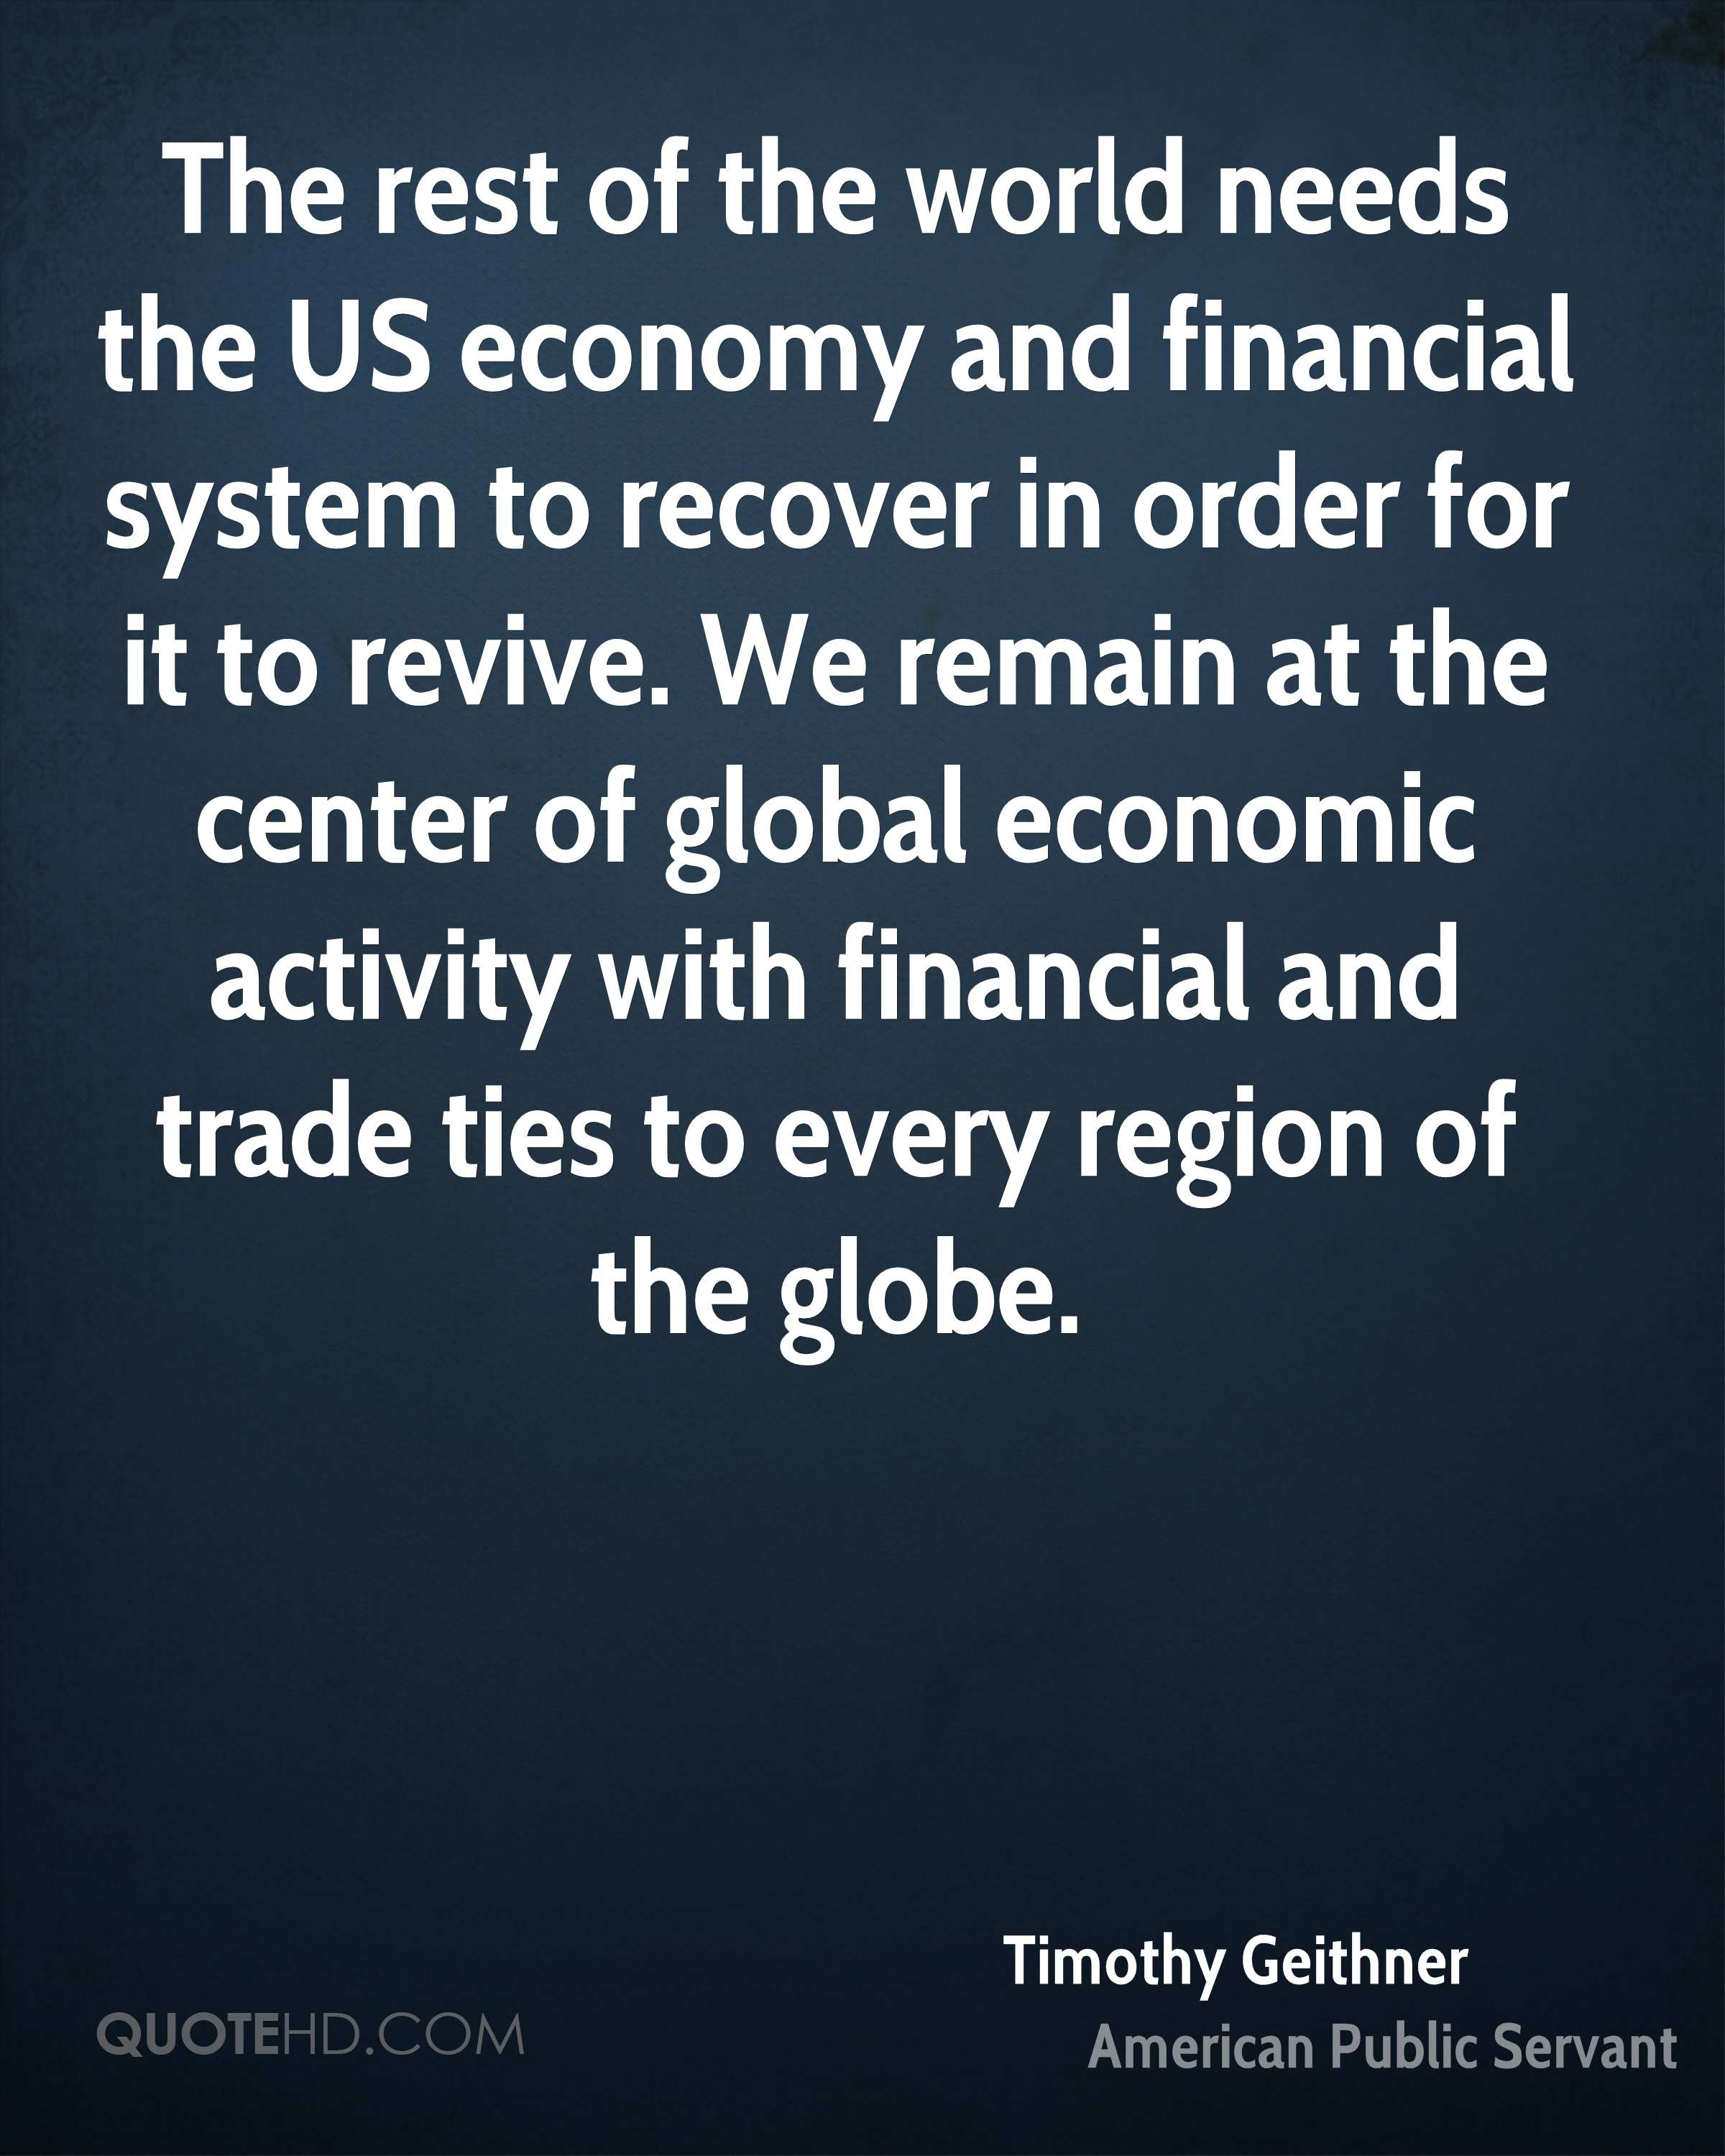 The rest of the world needs the US economy and financial system to recover in order for it to revive. We remain at the center of global economic activity with financial and trade ties to every region of the globe.